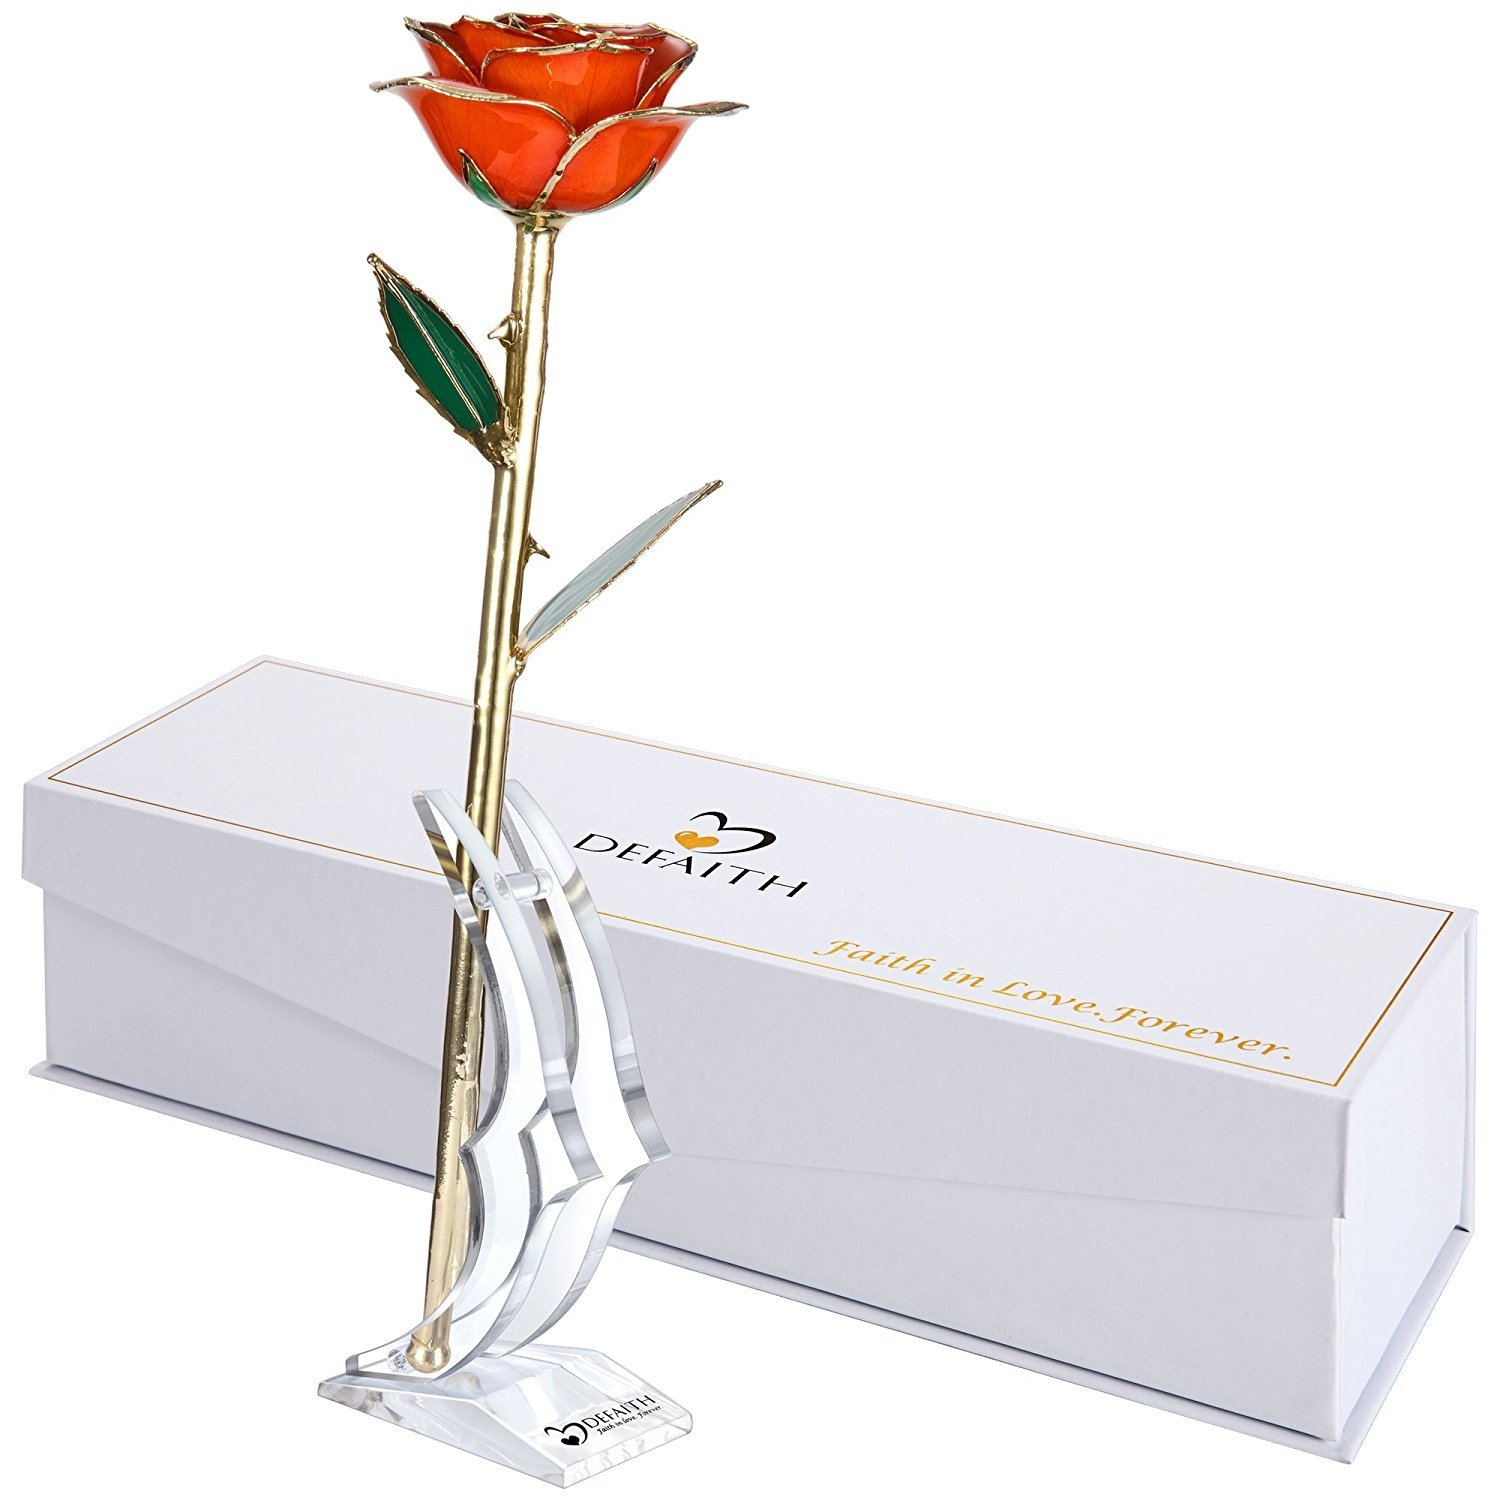 (G.Tangerine) - DEFAITH Tangerine 24K Gold Rose, Unique Anniversary Gifts for Mother Wife Girlfriend Her Women, Made from Real Rose Flower with Stand B014IZ3P86 G.Tangerine